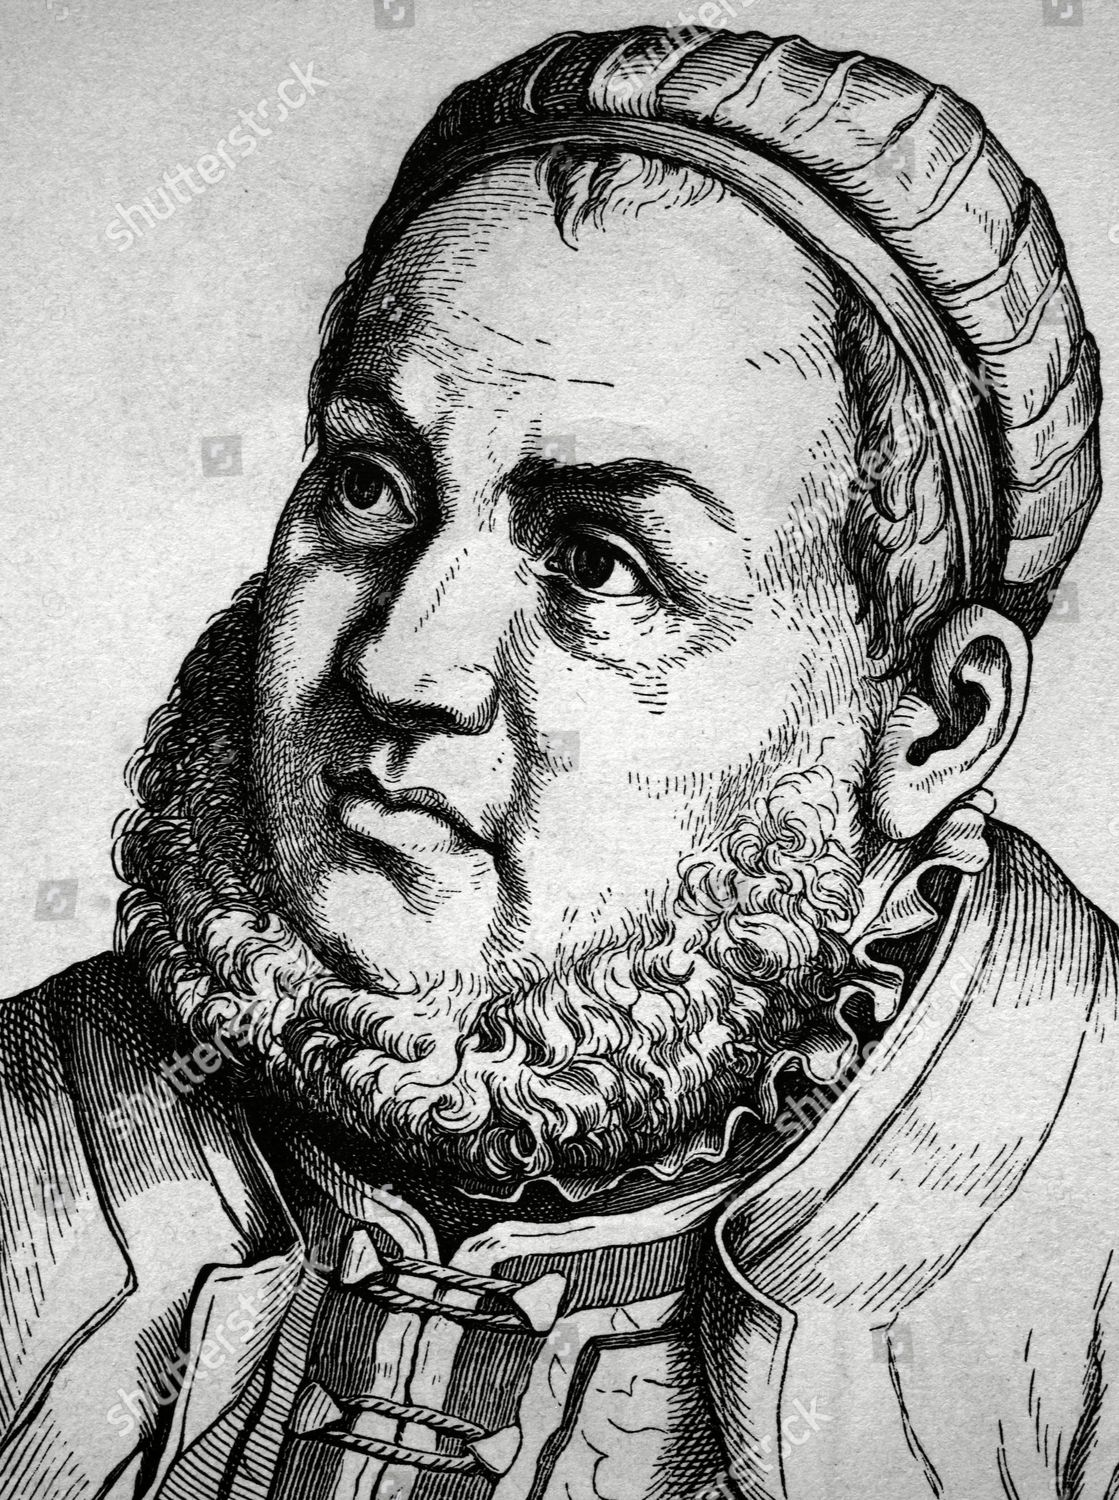 an overview of the opponent of martin luther george duke of saxony in 16th century Electorate of saxony's wiki: until in the 16th century after the battle of at which the augustinian monk martin luther was appointed professor of.